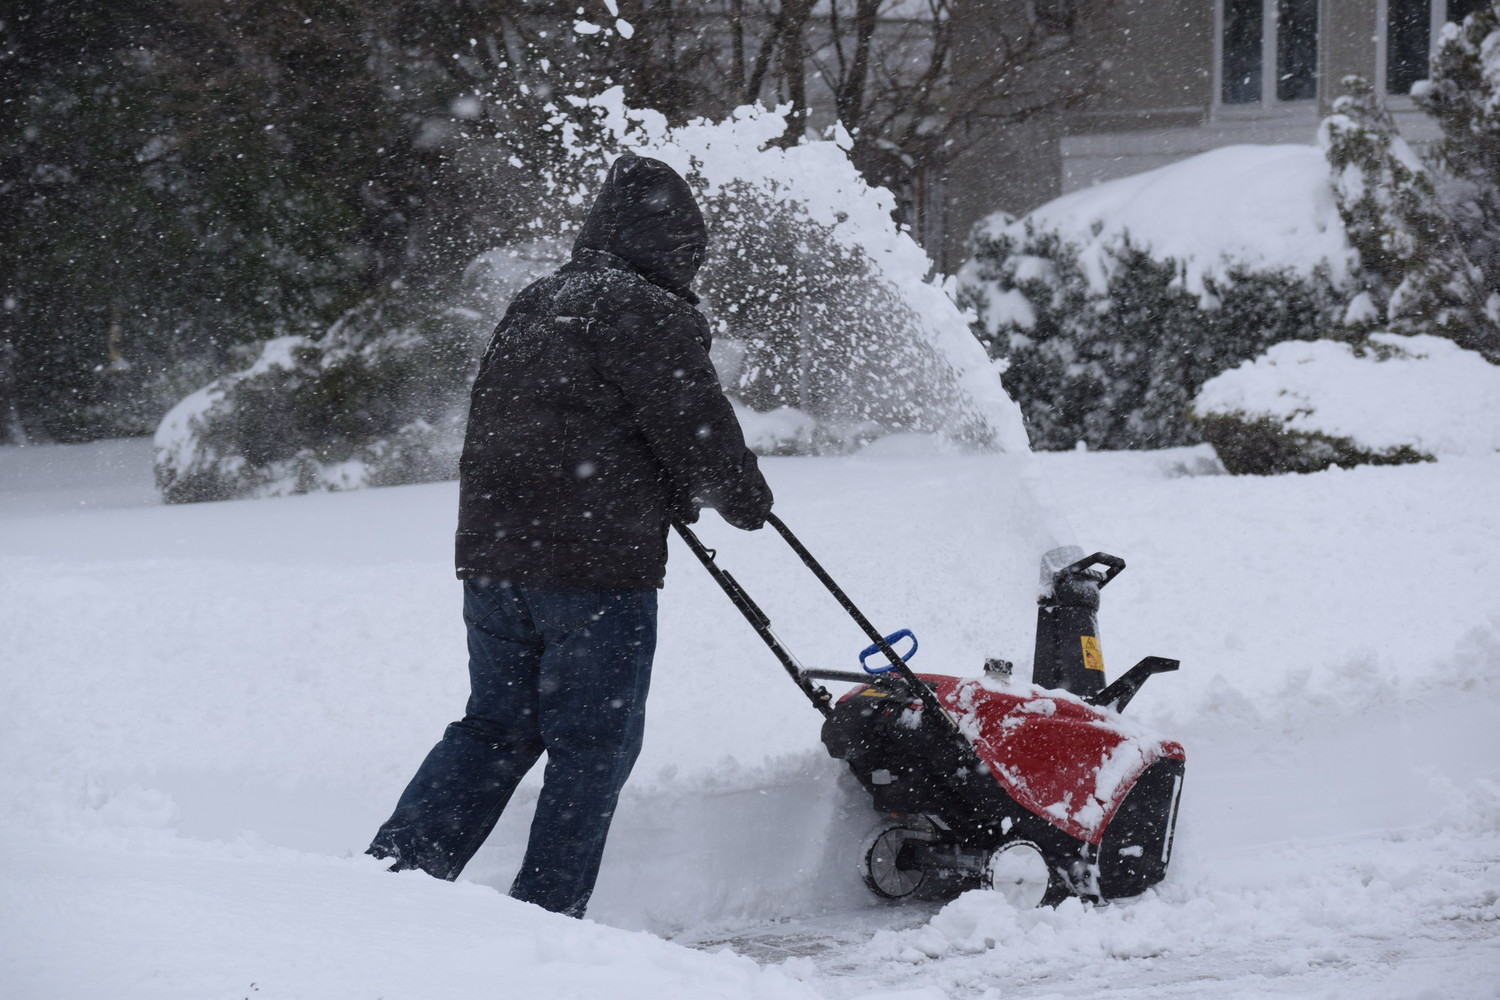 Snow is expected to fall across Long Island and the Five Towns between Saturday and Sunday.